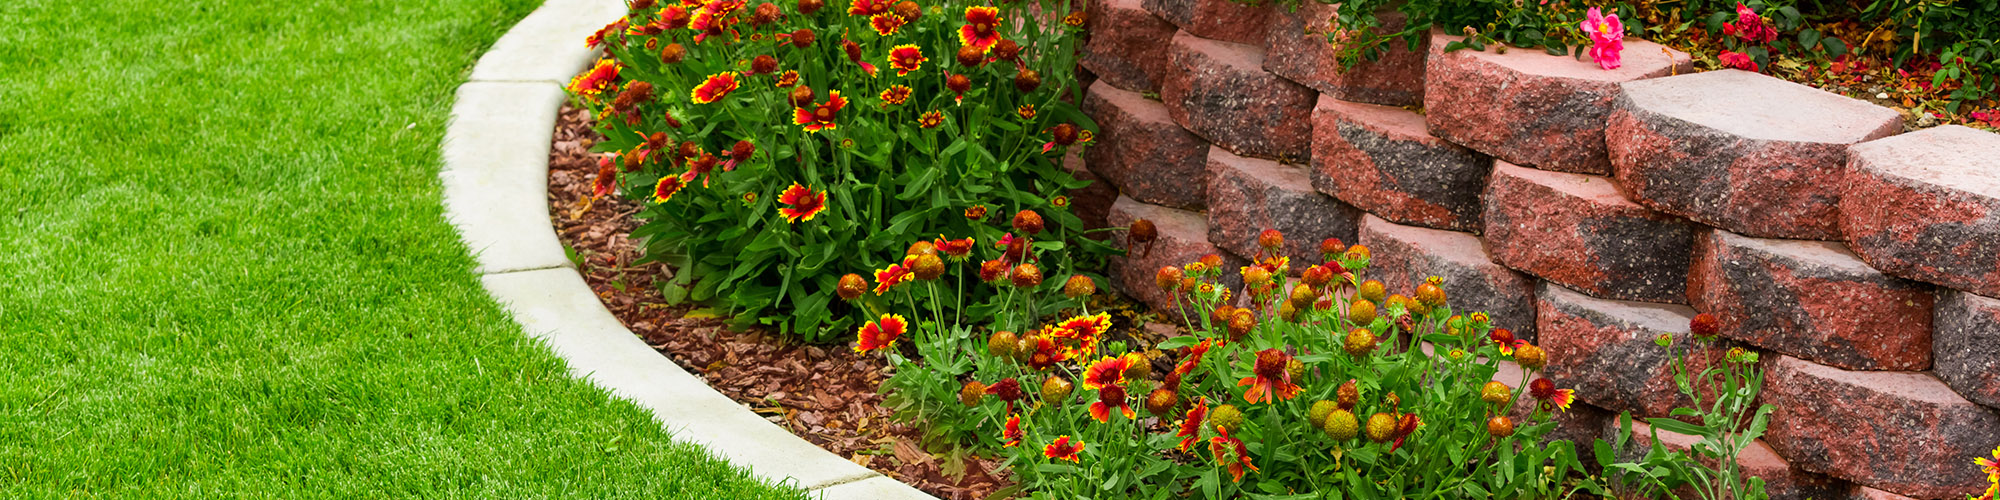 Landscaping Services Granbury Tx